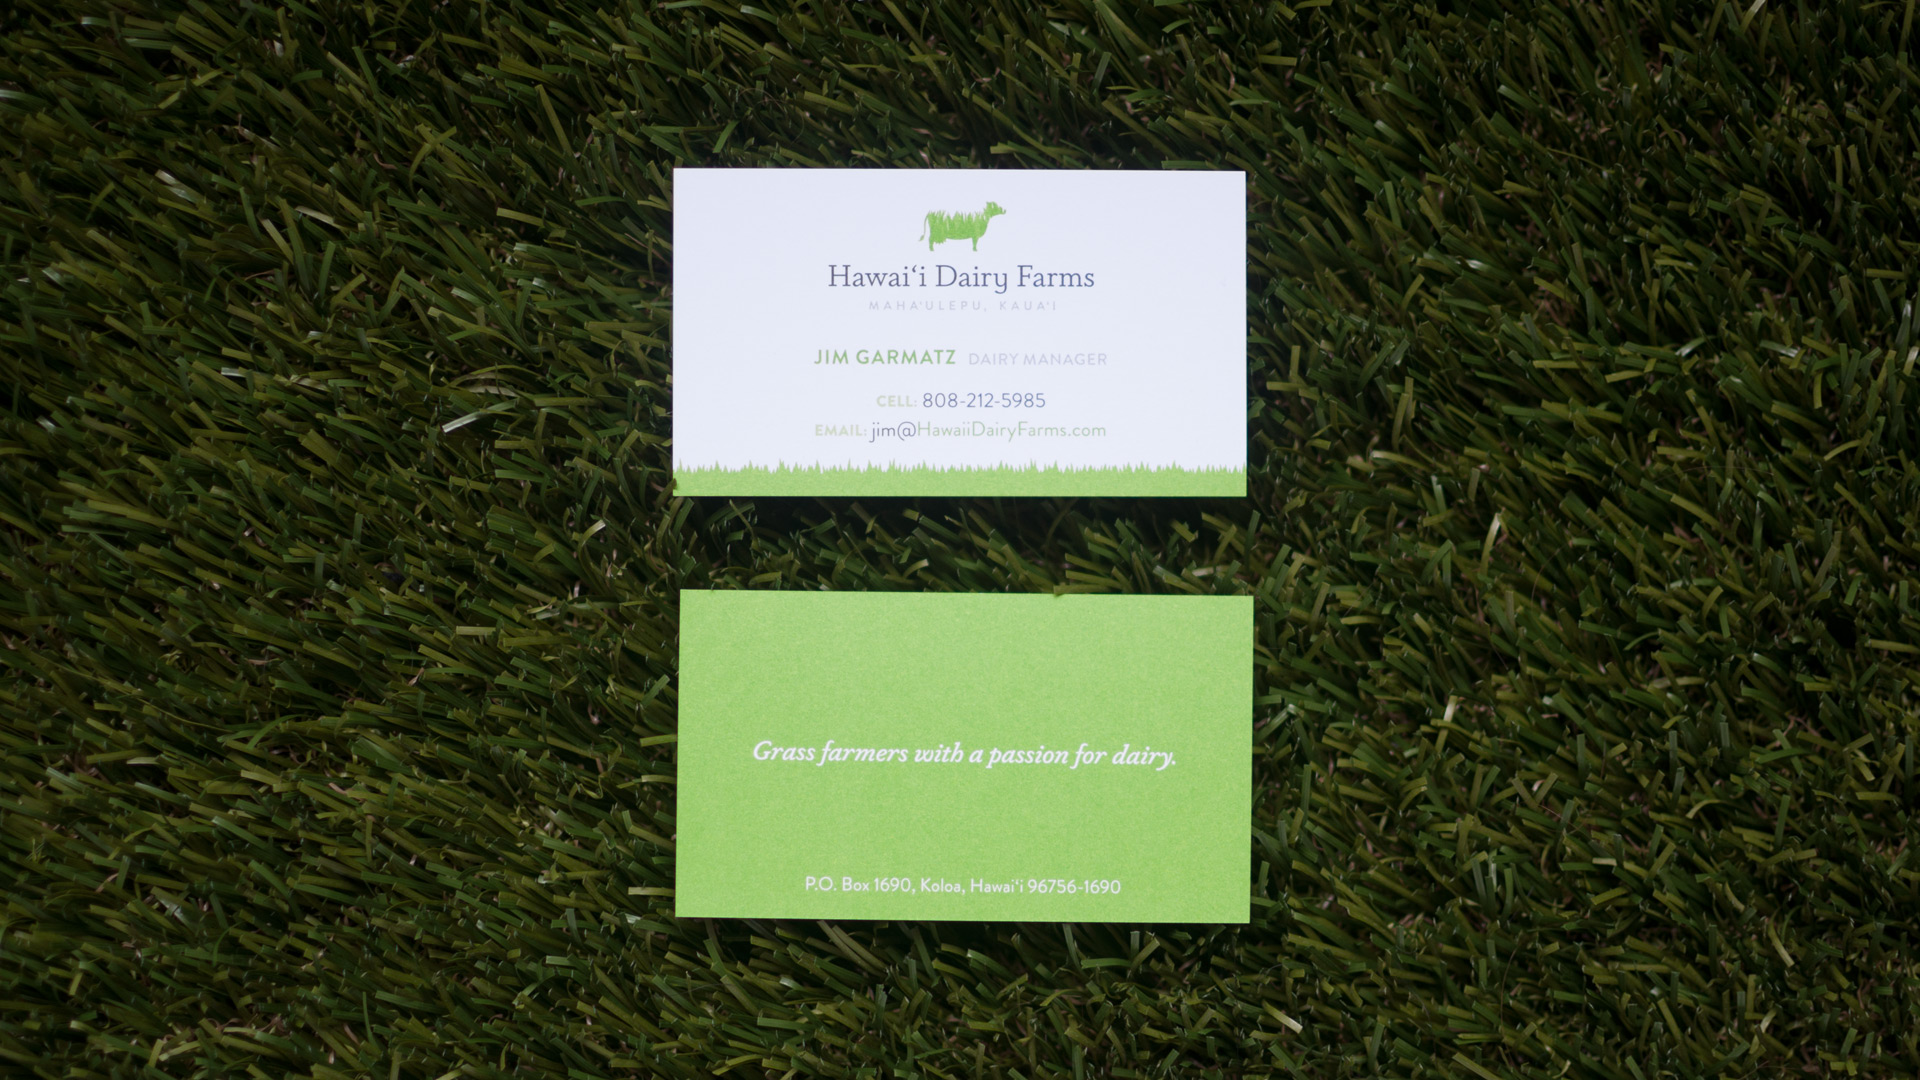 Hdf businesscard